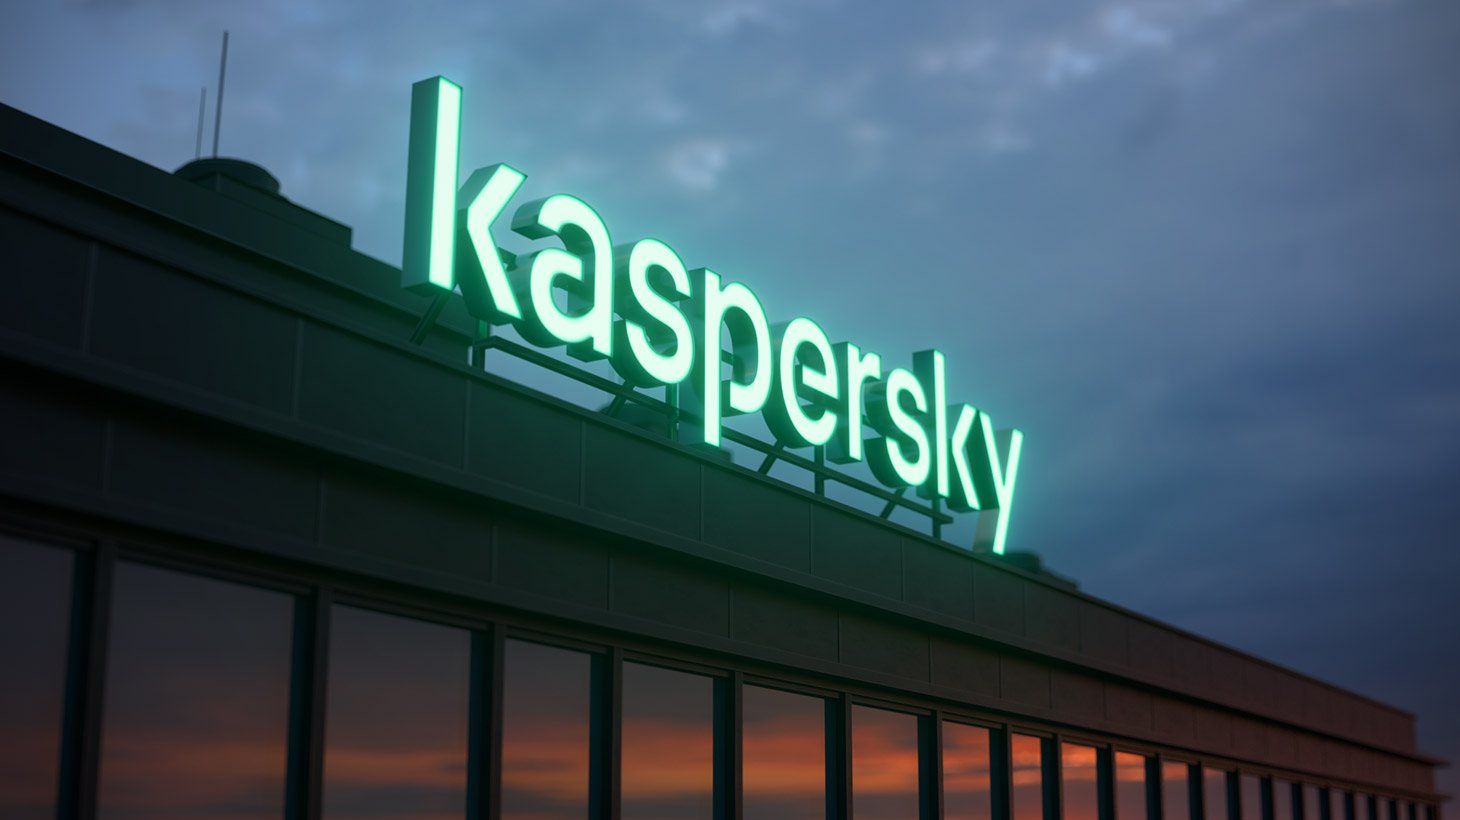 New logo on the roof of Kaspersky's headquerters